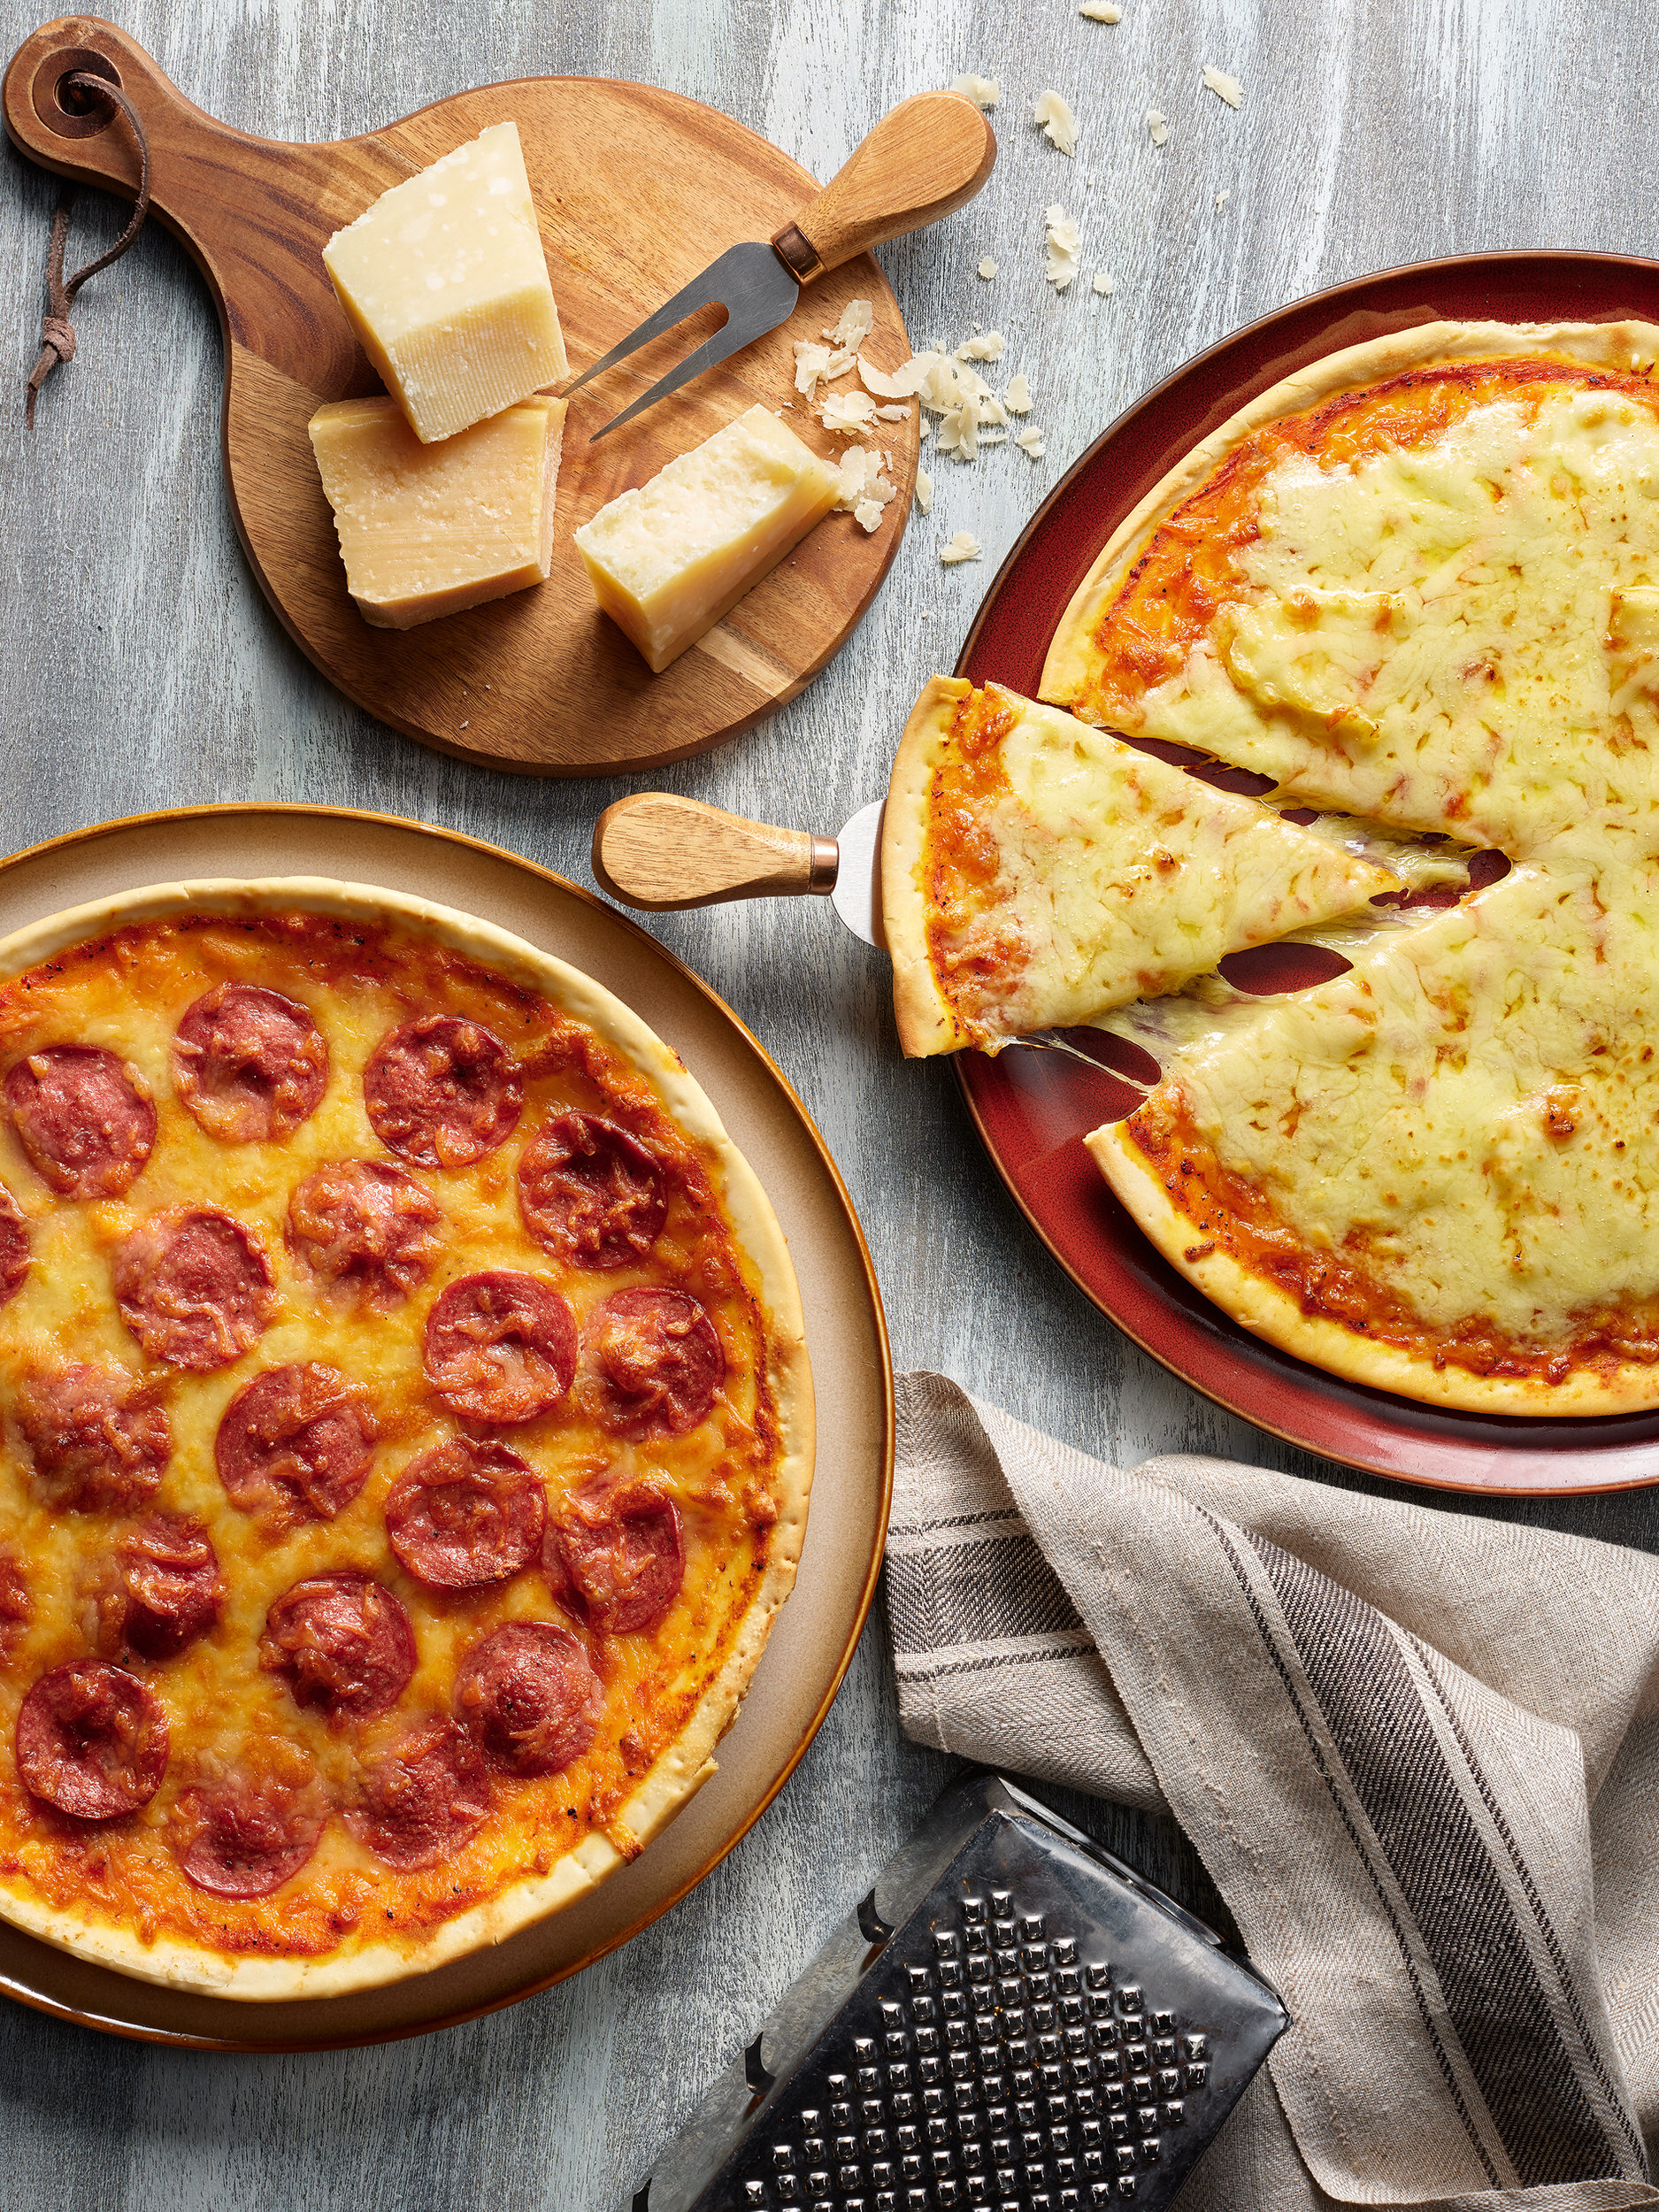 [NEW] Thin Crust Pizzas - Classic Four Cheese, Spicy Pepperoni_1.jpg